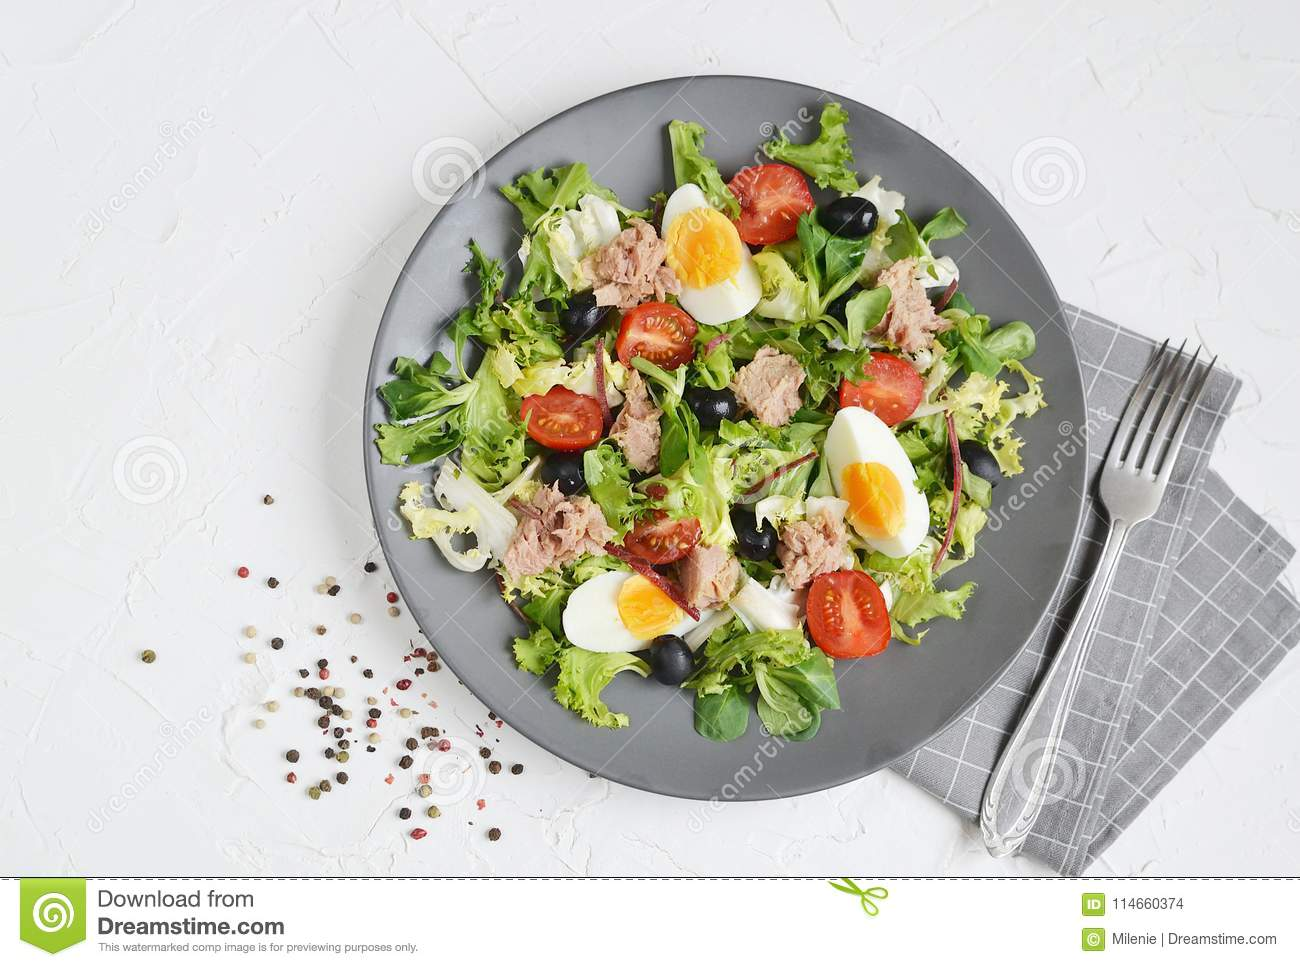 Tomates Cherry Eggs da pimenta de Tuna Salad Cabbage Arugula Oil